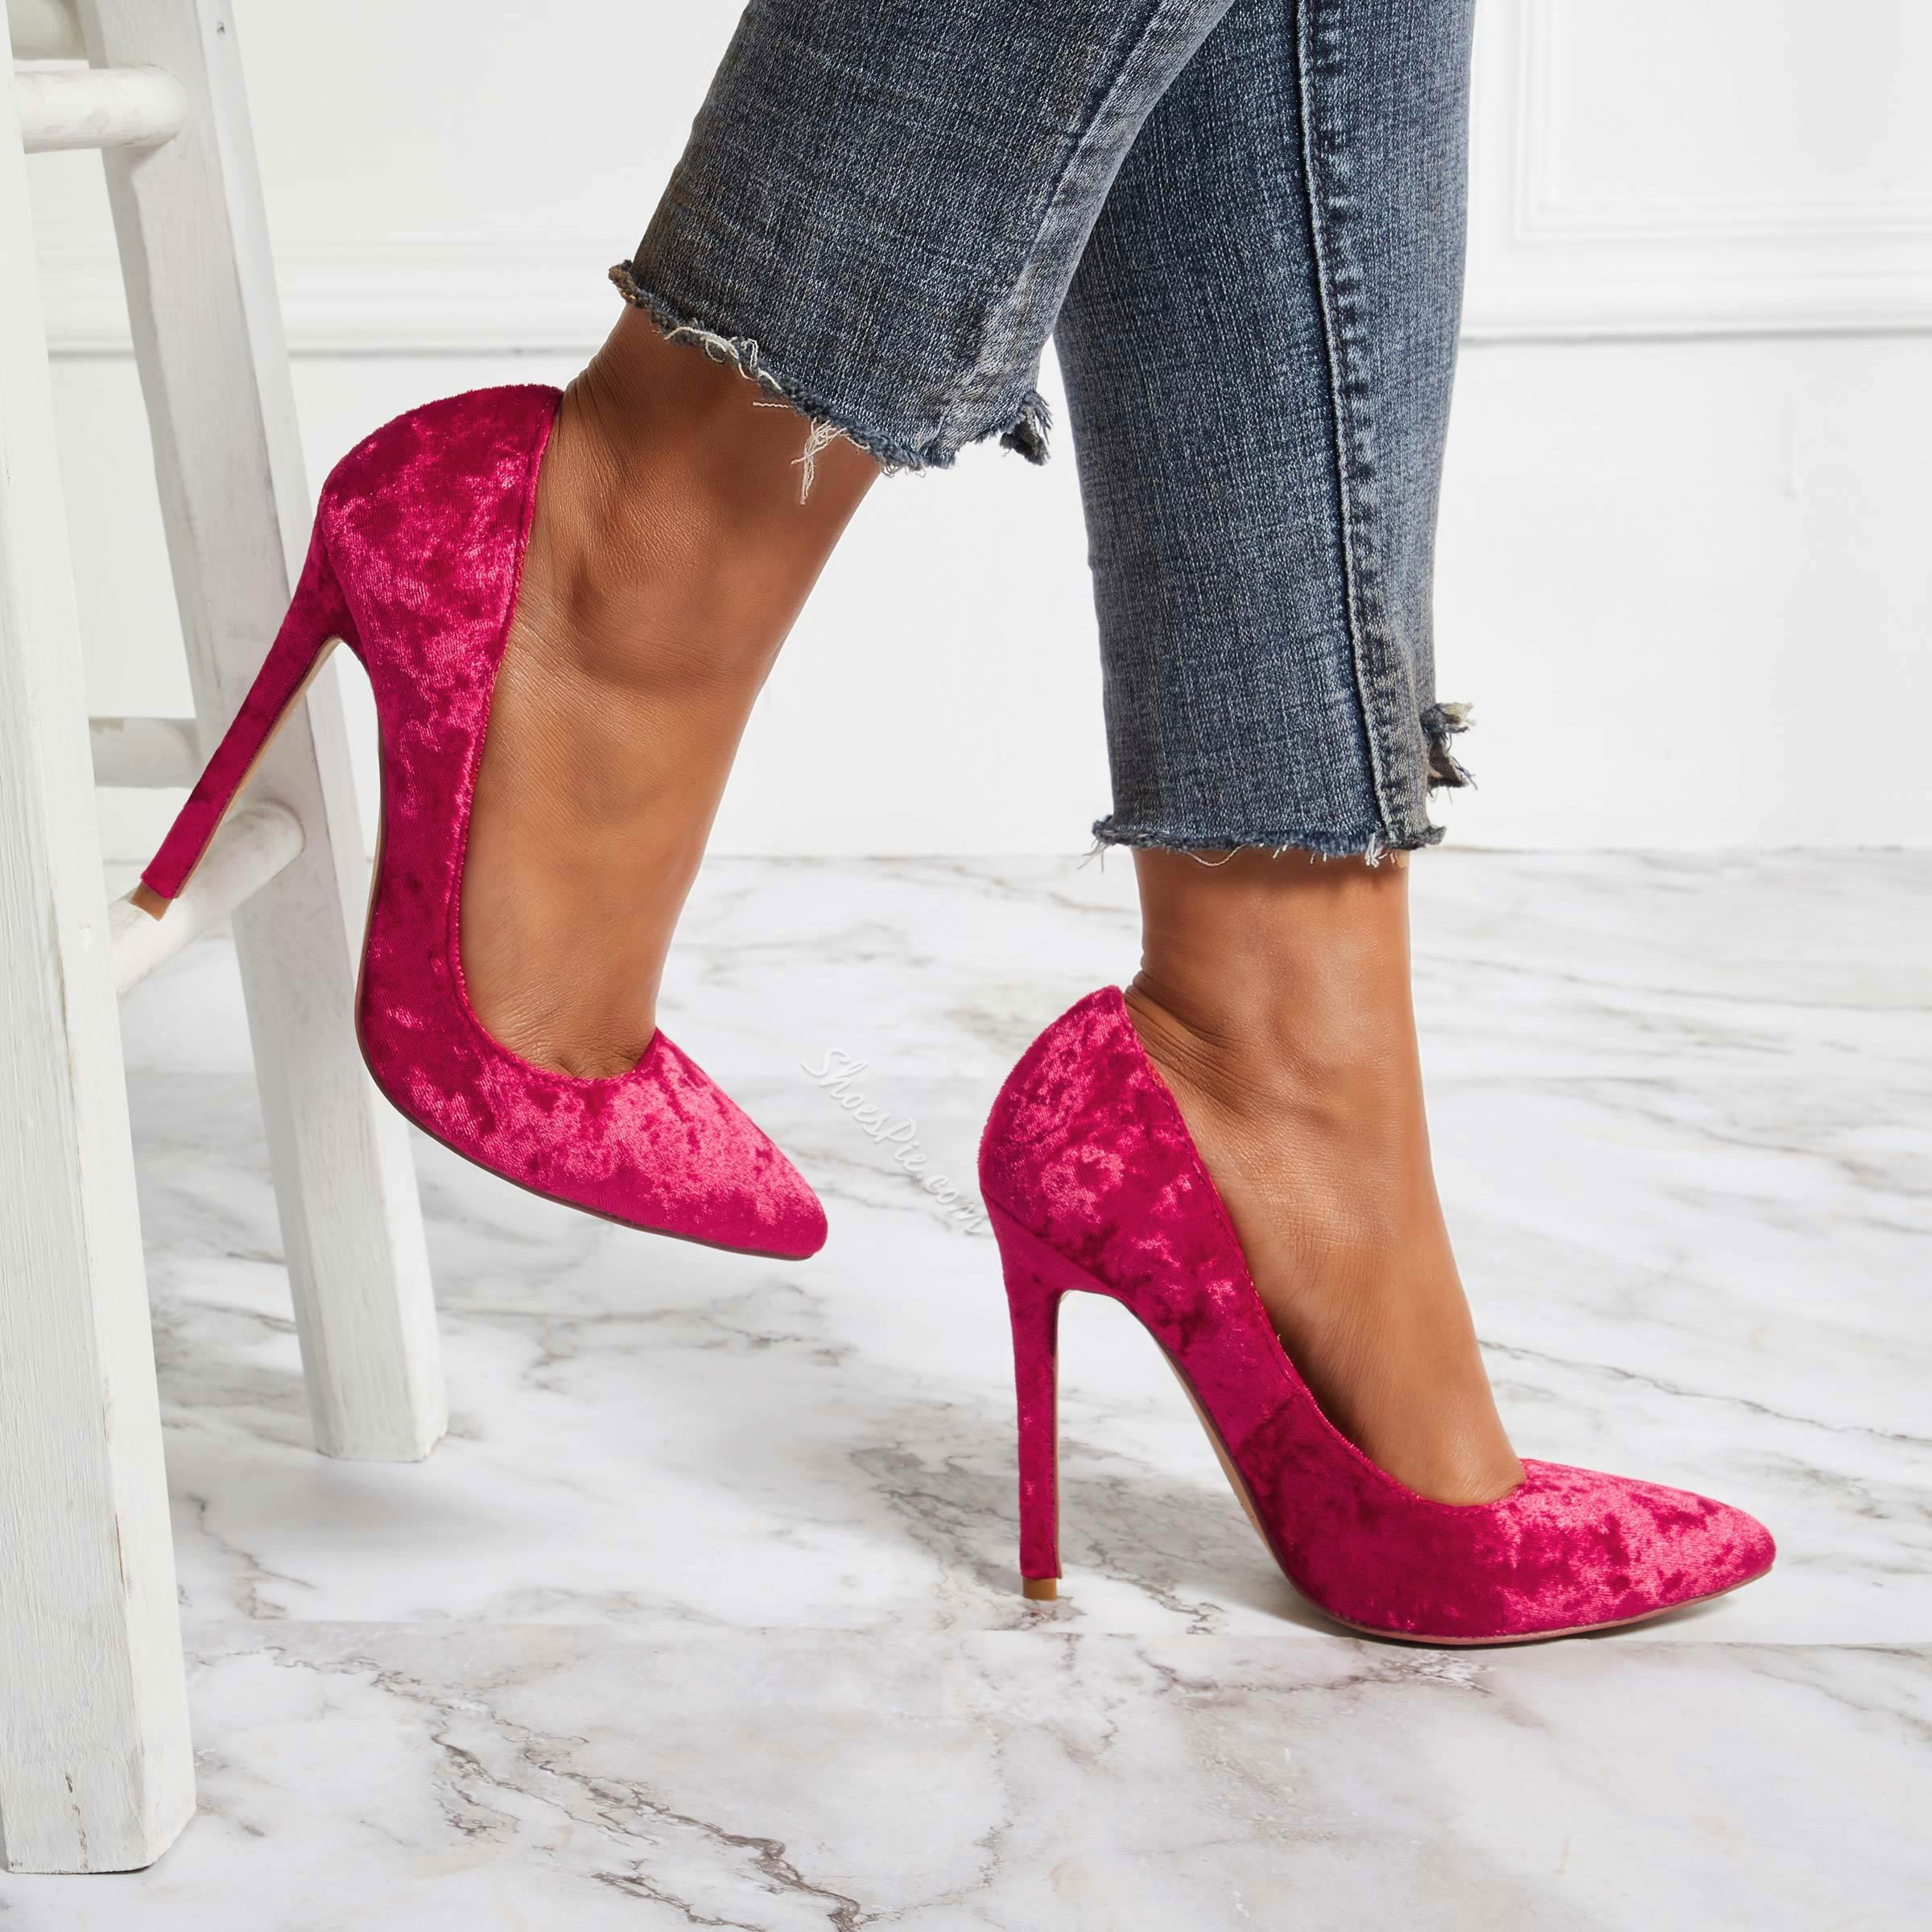 Suede Burgundy Pointed Toe Stiletto Heels